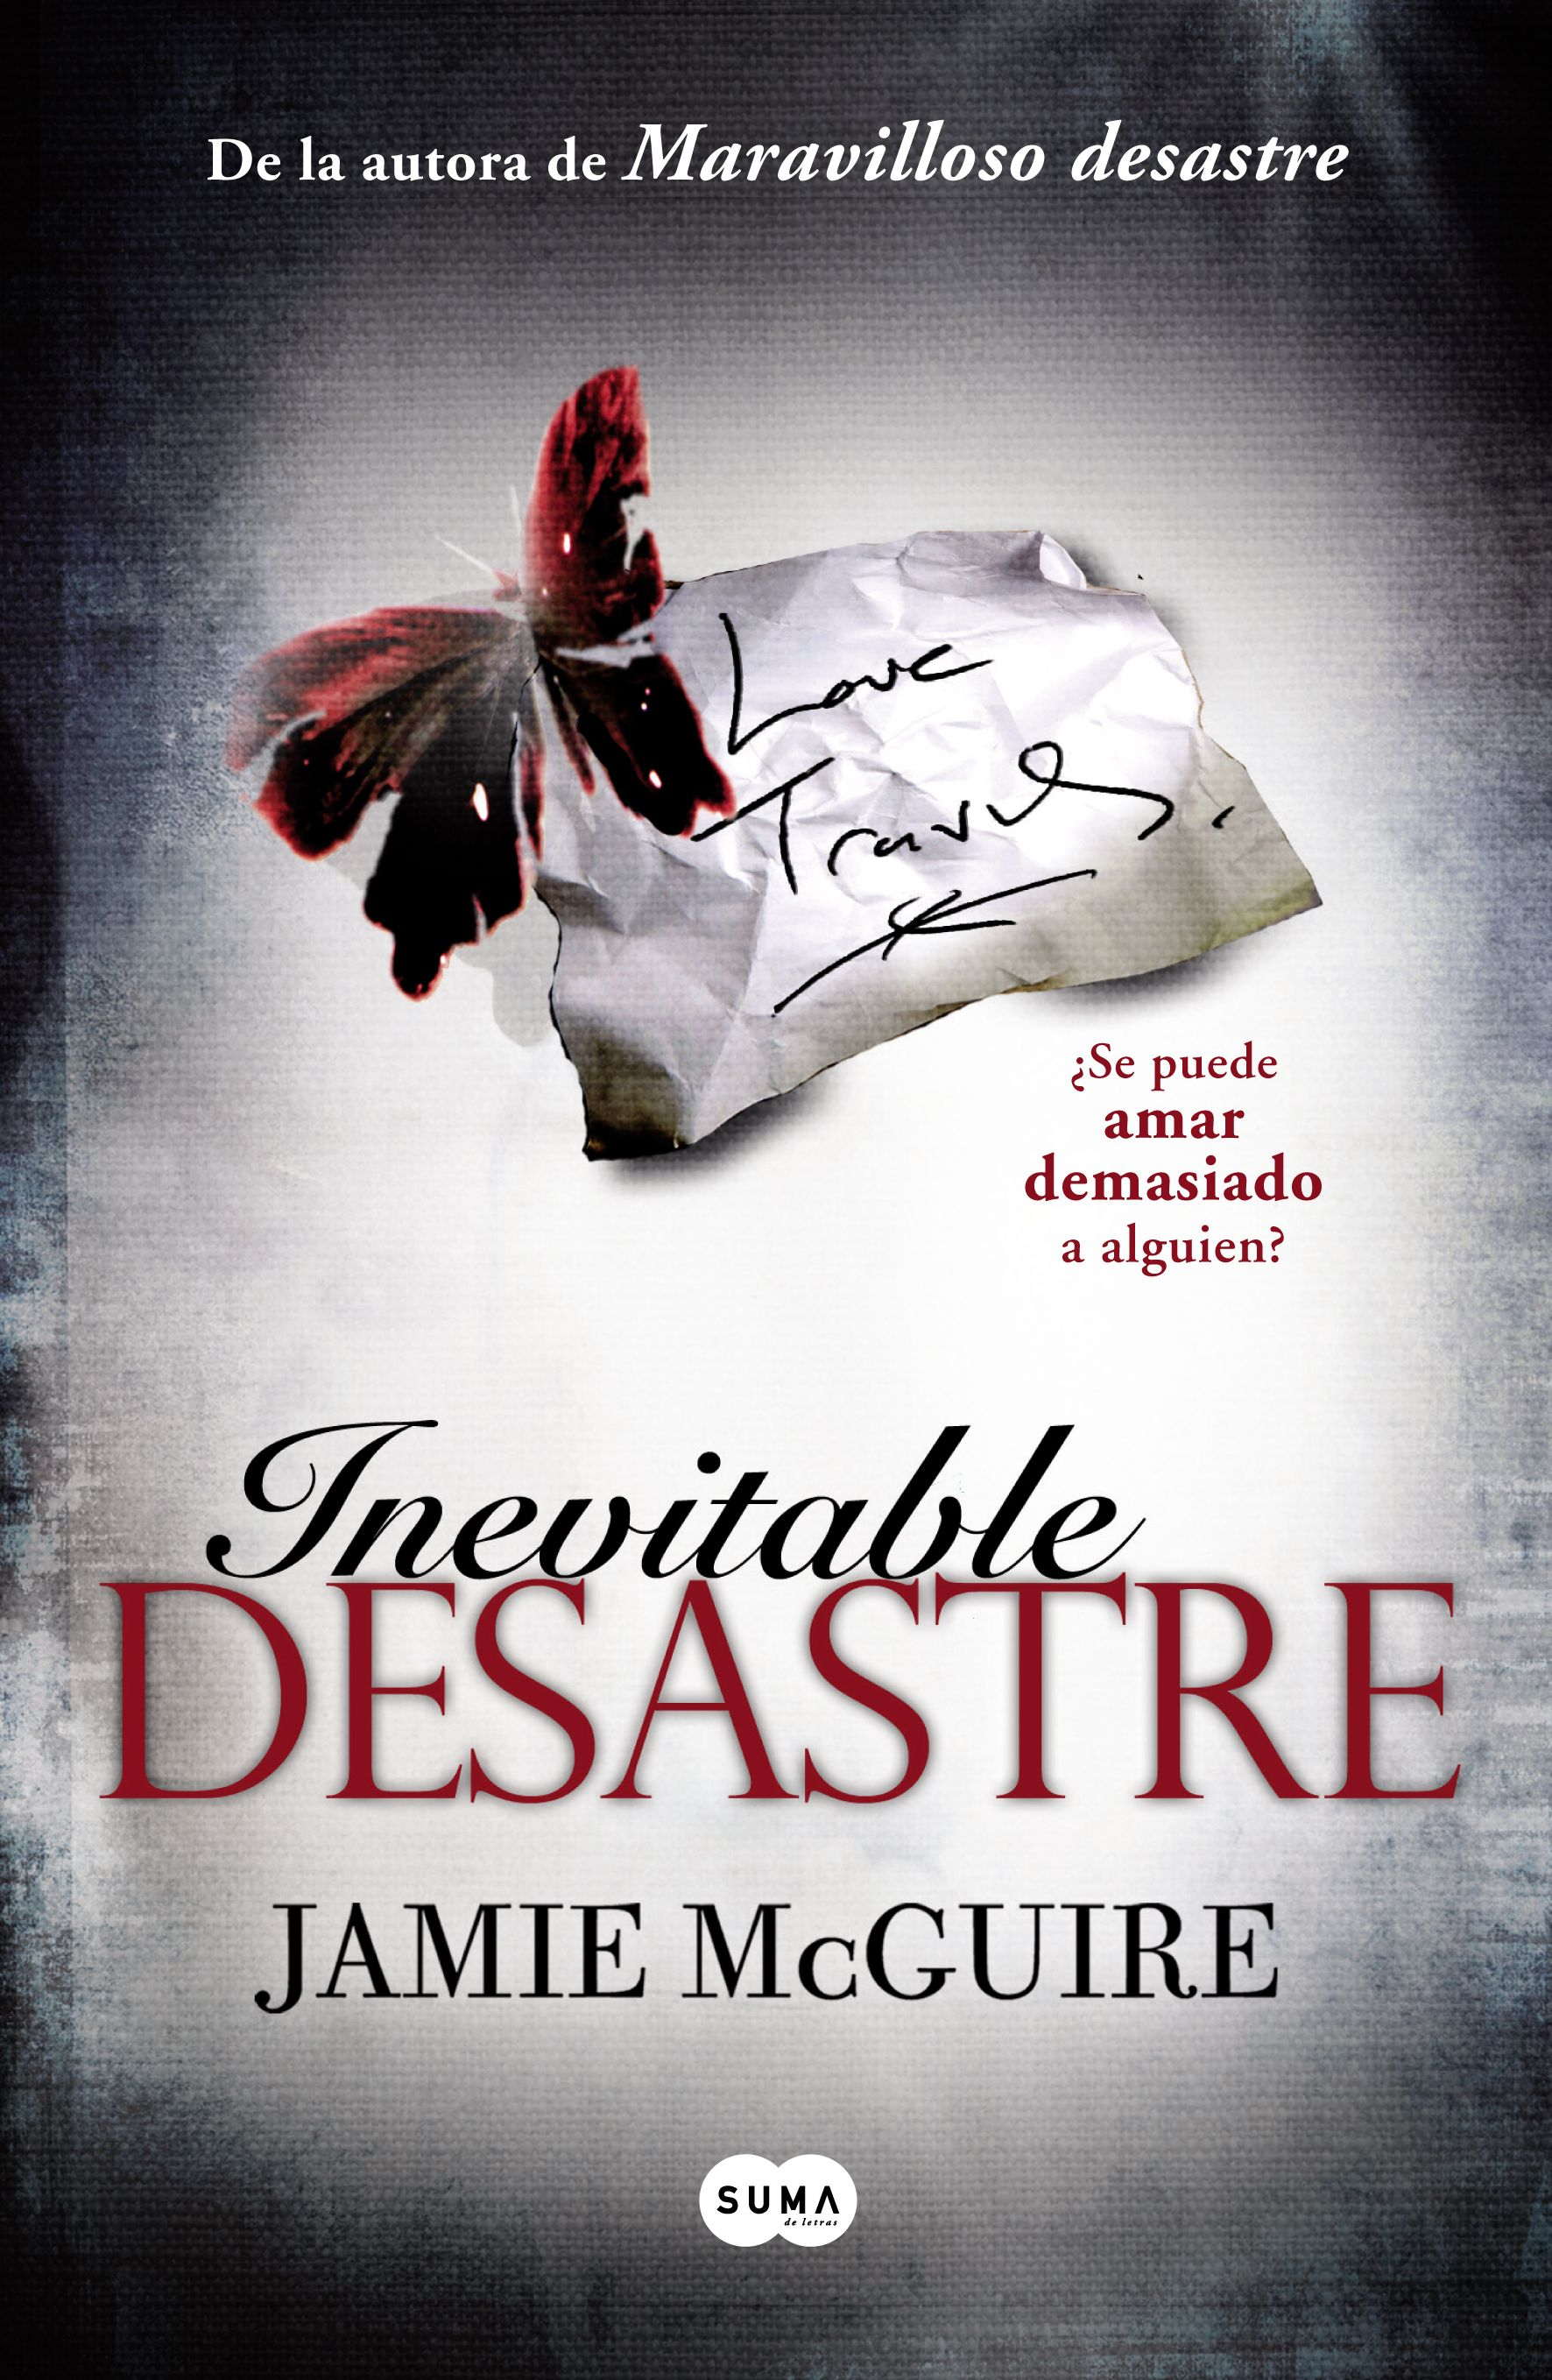 endlessly beautiful jamie mcguire pdf